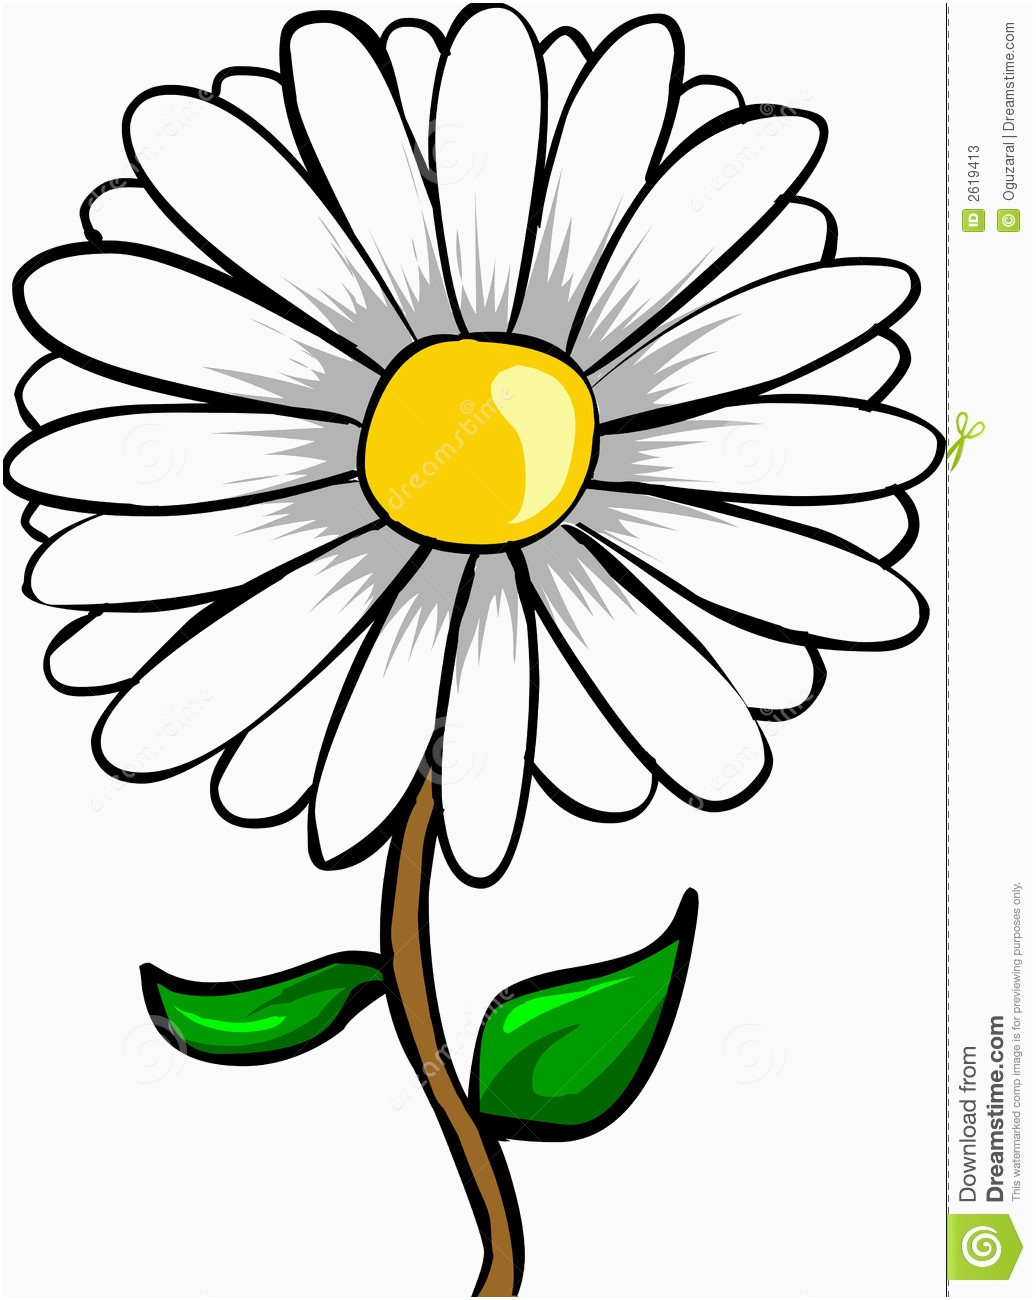 1036x1300 Daisy Clipart Awesome Top 71 Daisy Clip Art Free Clipart Image